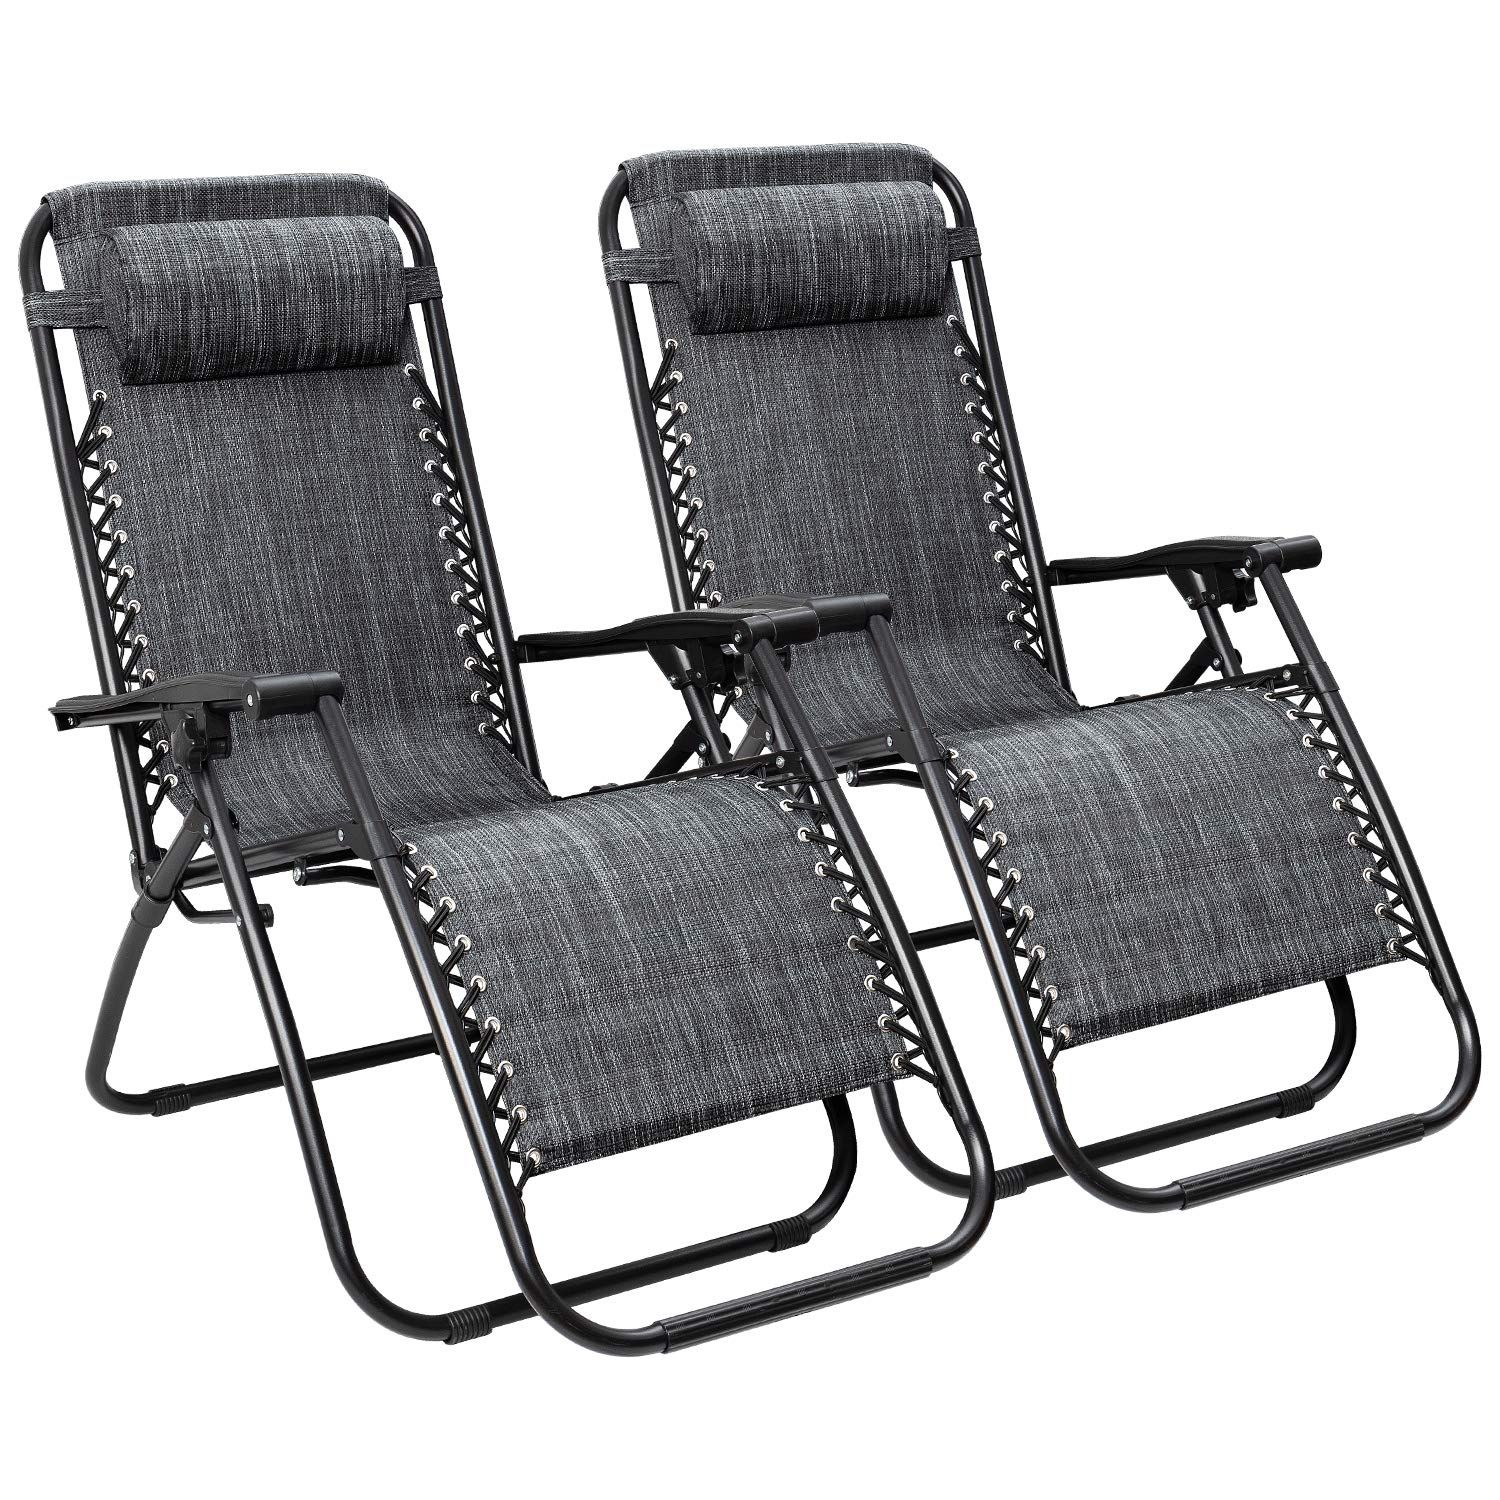 Zero Gravity Chairs Set of 2 with Pillow Patio Outdoor Adjustable Dining Reclining Folding Chairs for Deck Patio Beach Yard